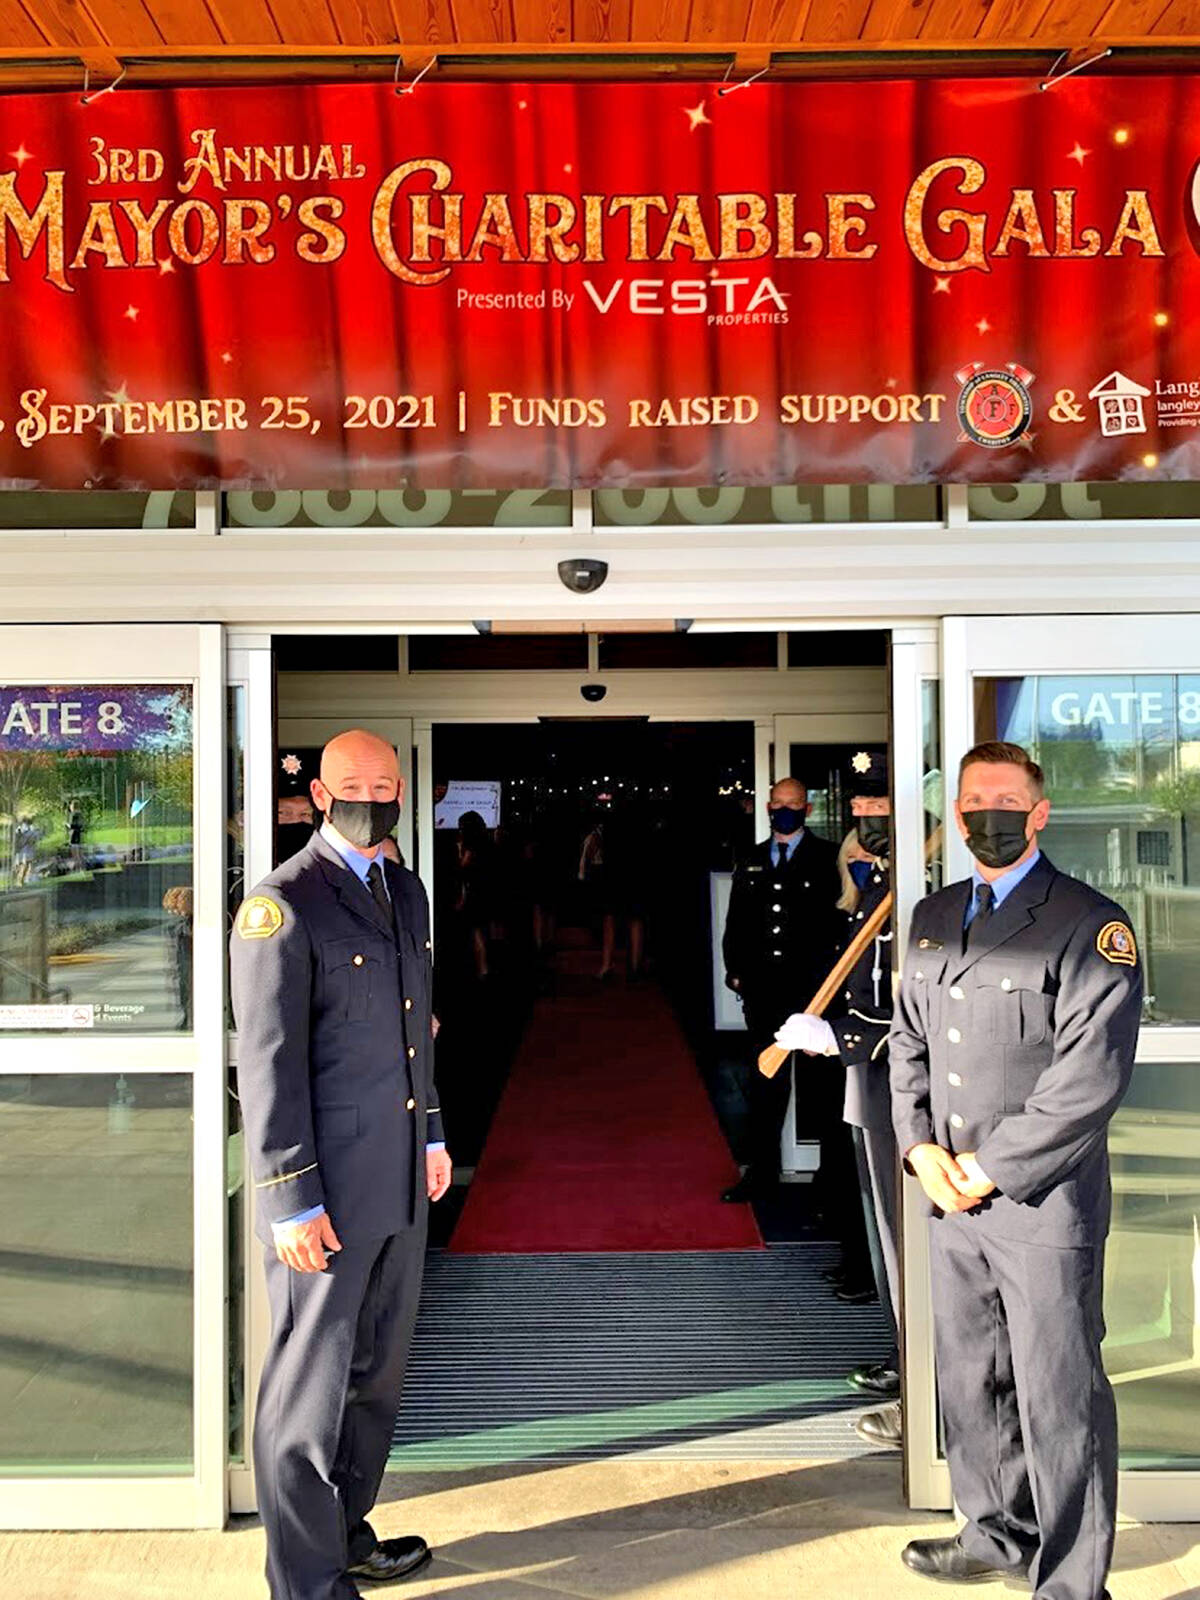 COVID precautions were in place at the third annual Mayor's Charitable Gala fundraiser at the Langley Events Centre Fieldhouse on Saturday, Sept. 25, with all participants vaccinated with at least one shot, the firefighters charity said. (Brad Peters/Special to Langley Advance Times)